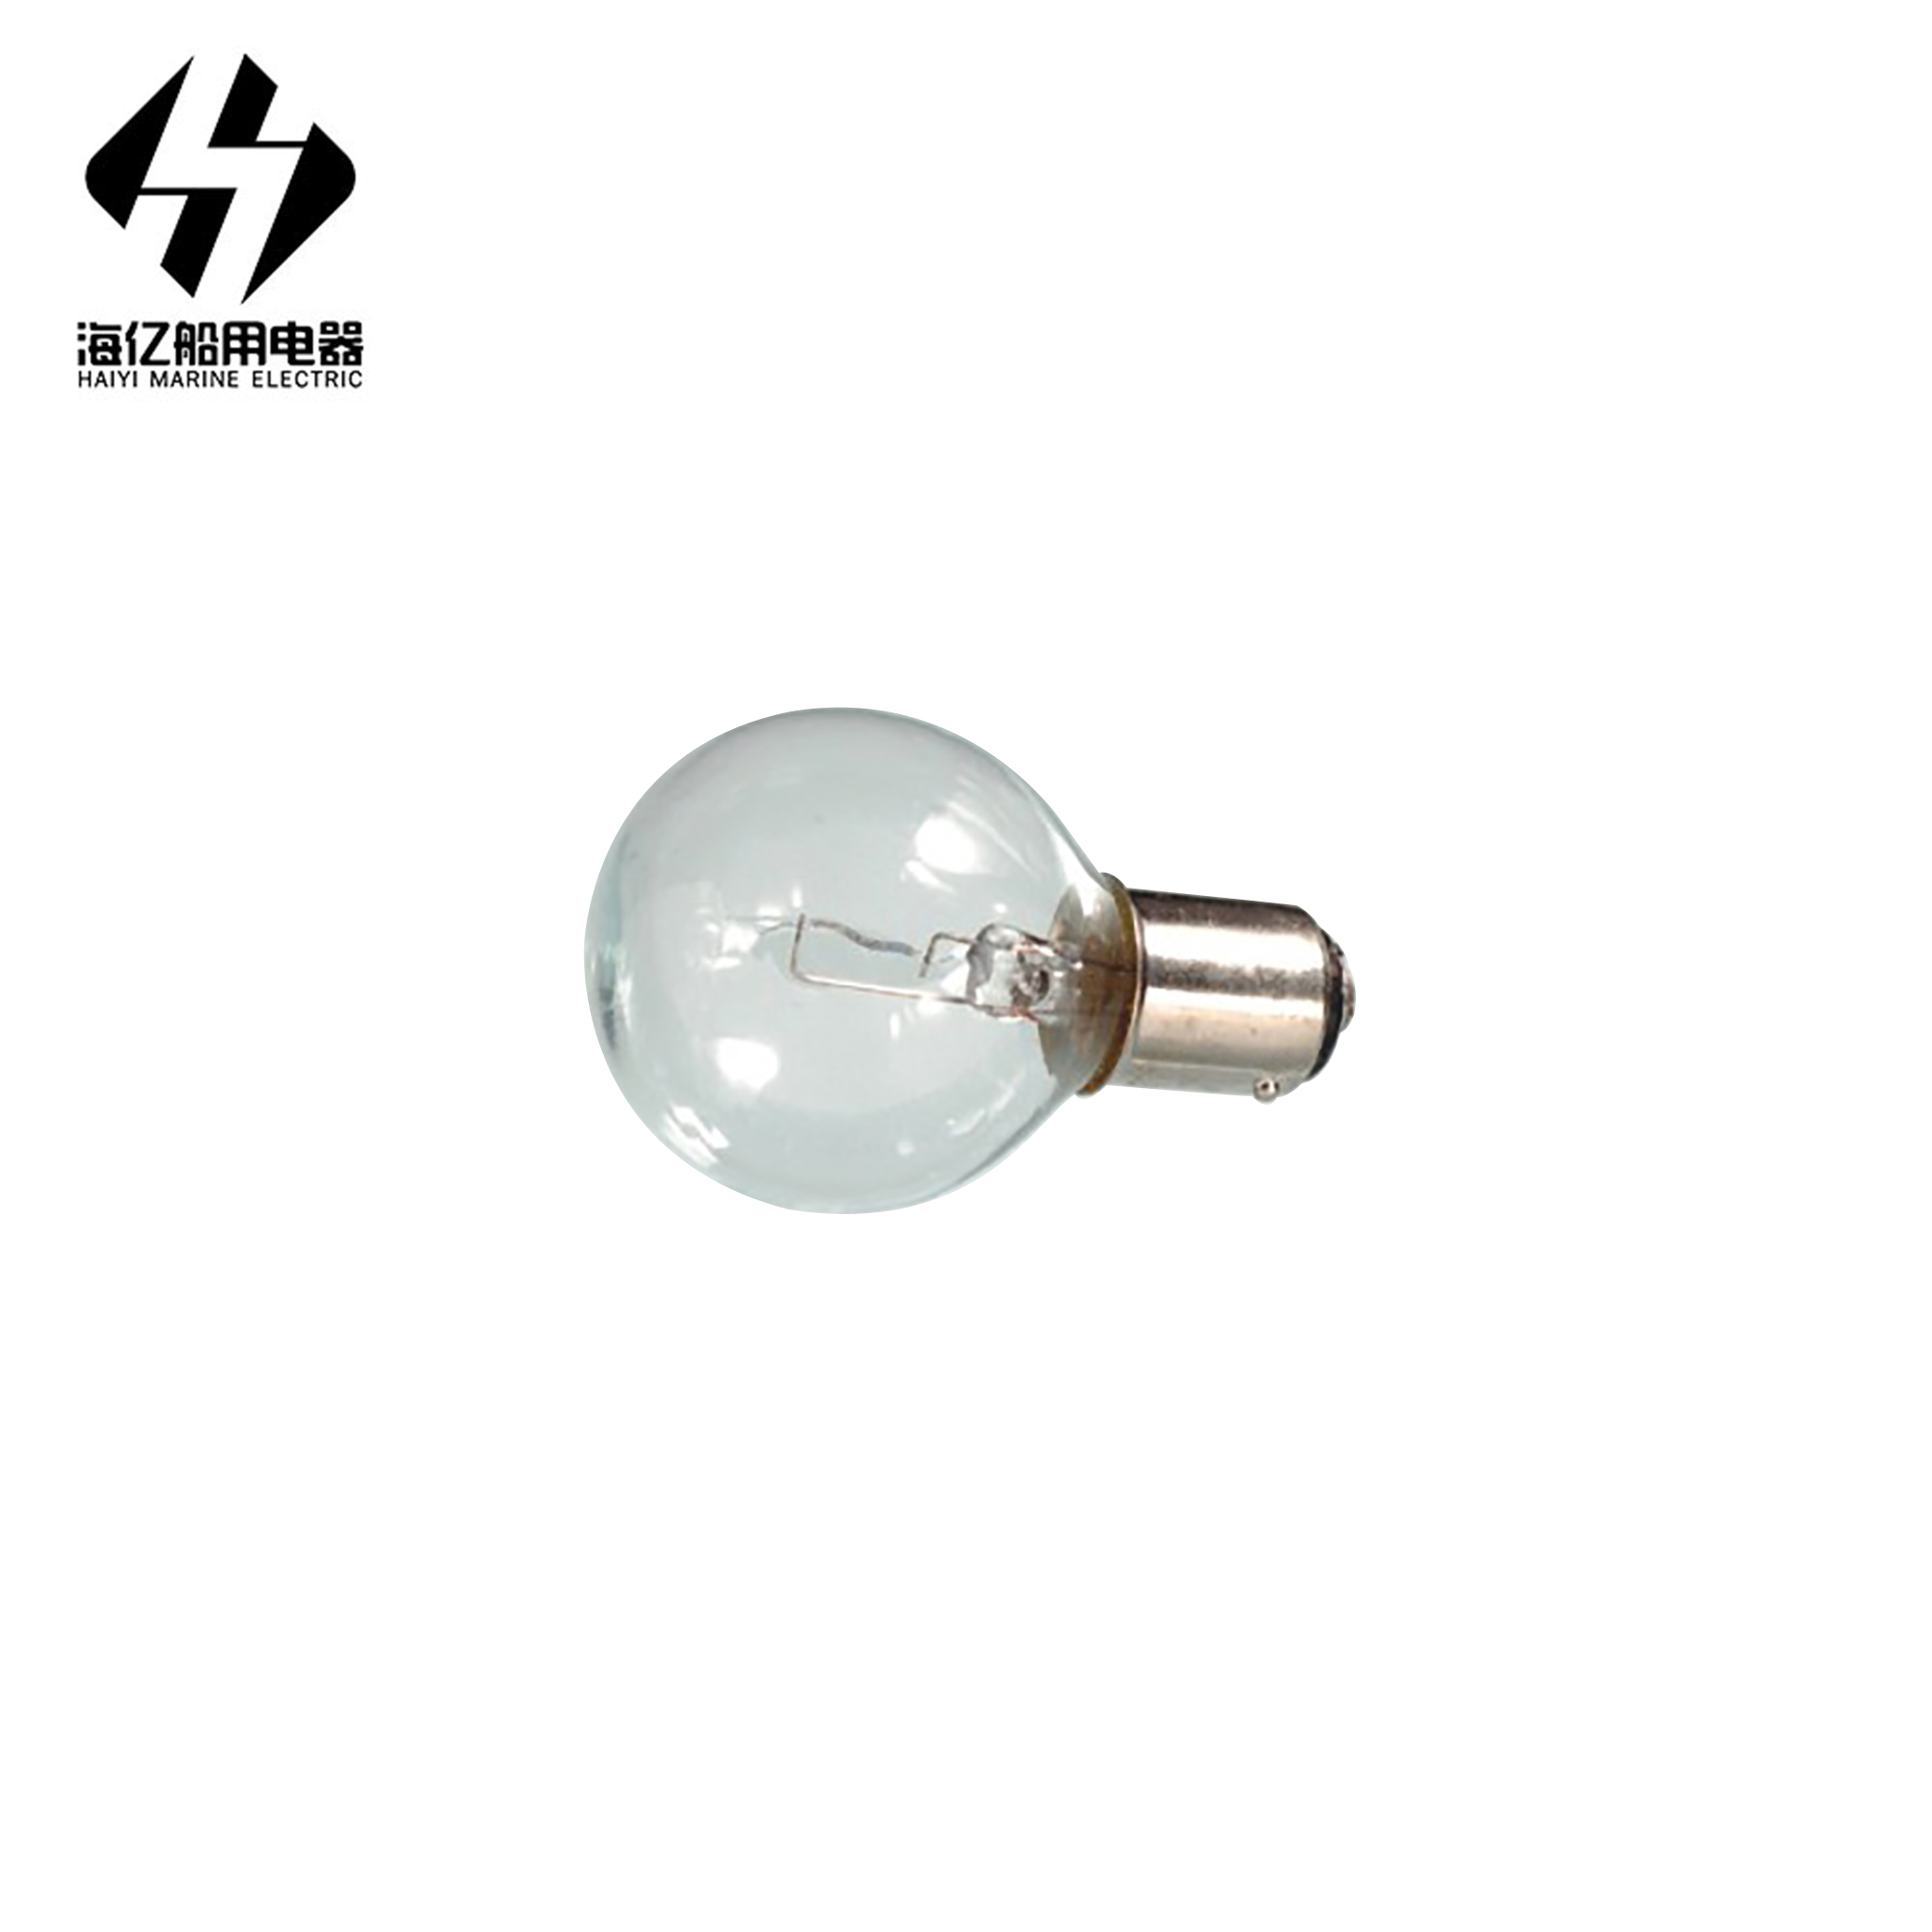 China Marine Lamp Bulb, China Marine Lamp Bulb Manufacturers